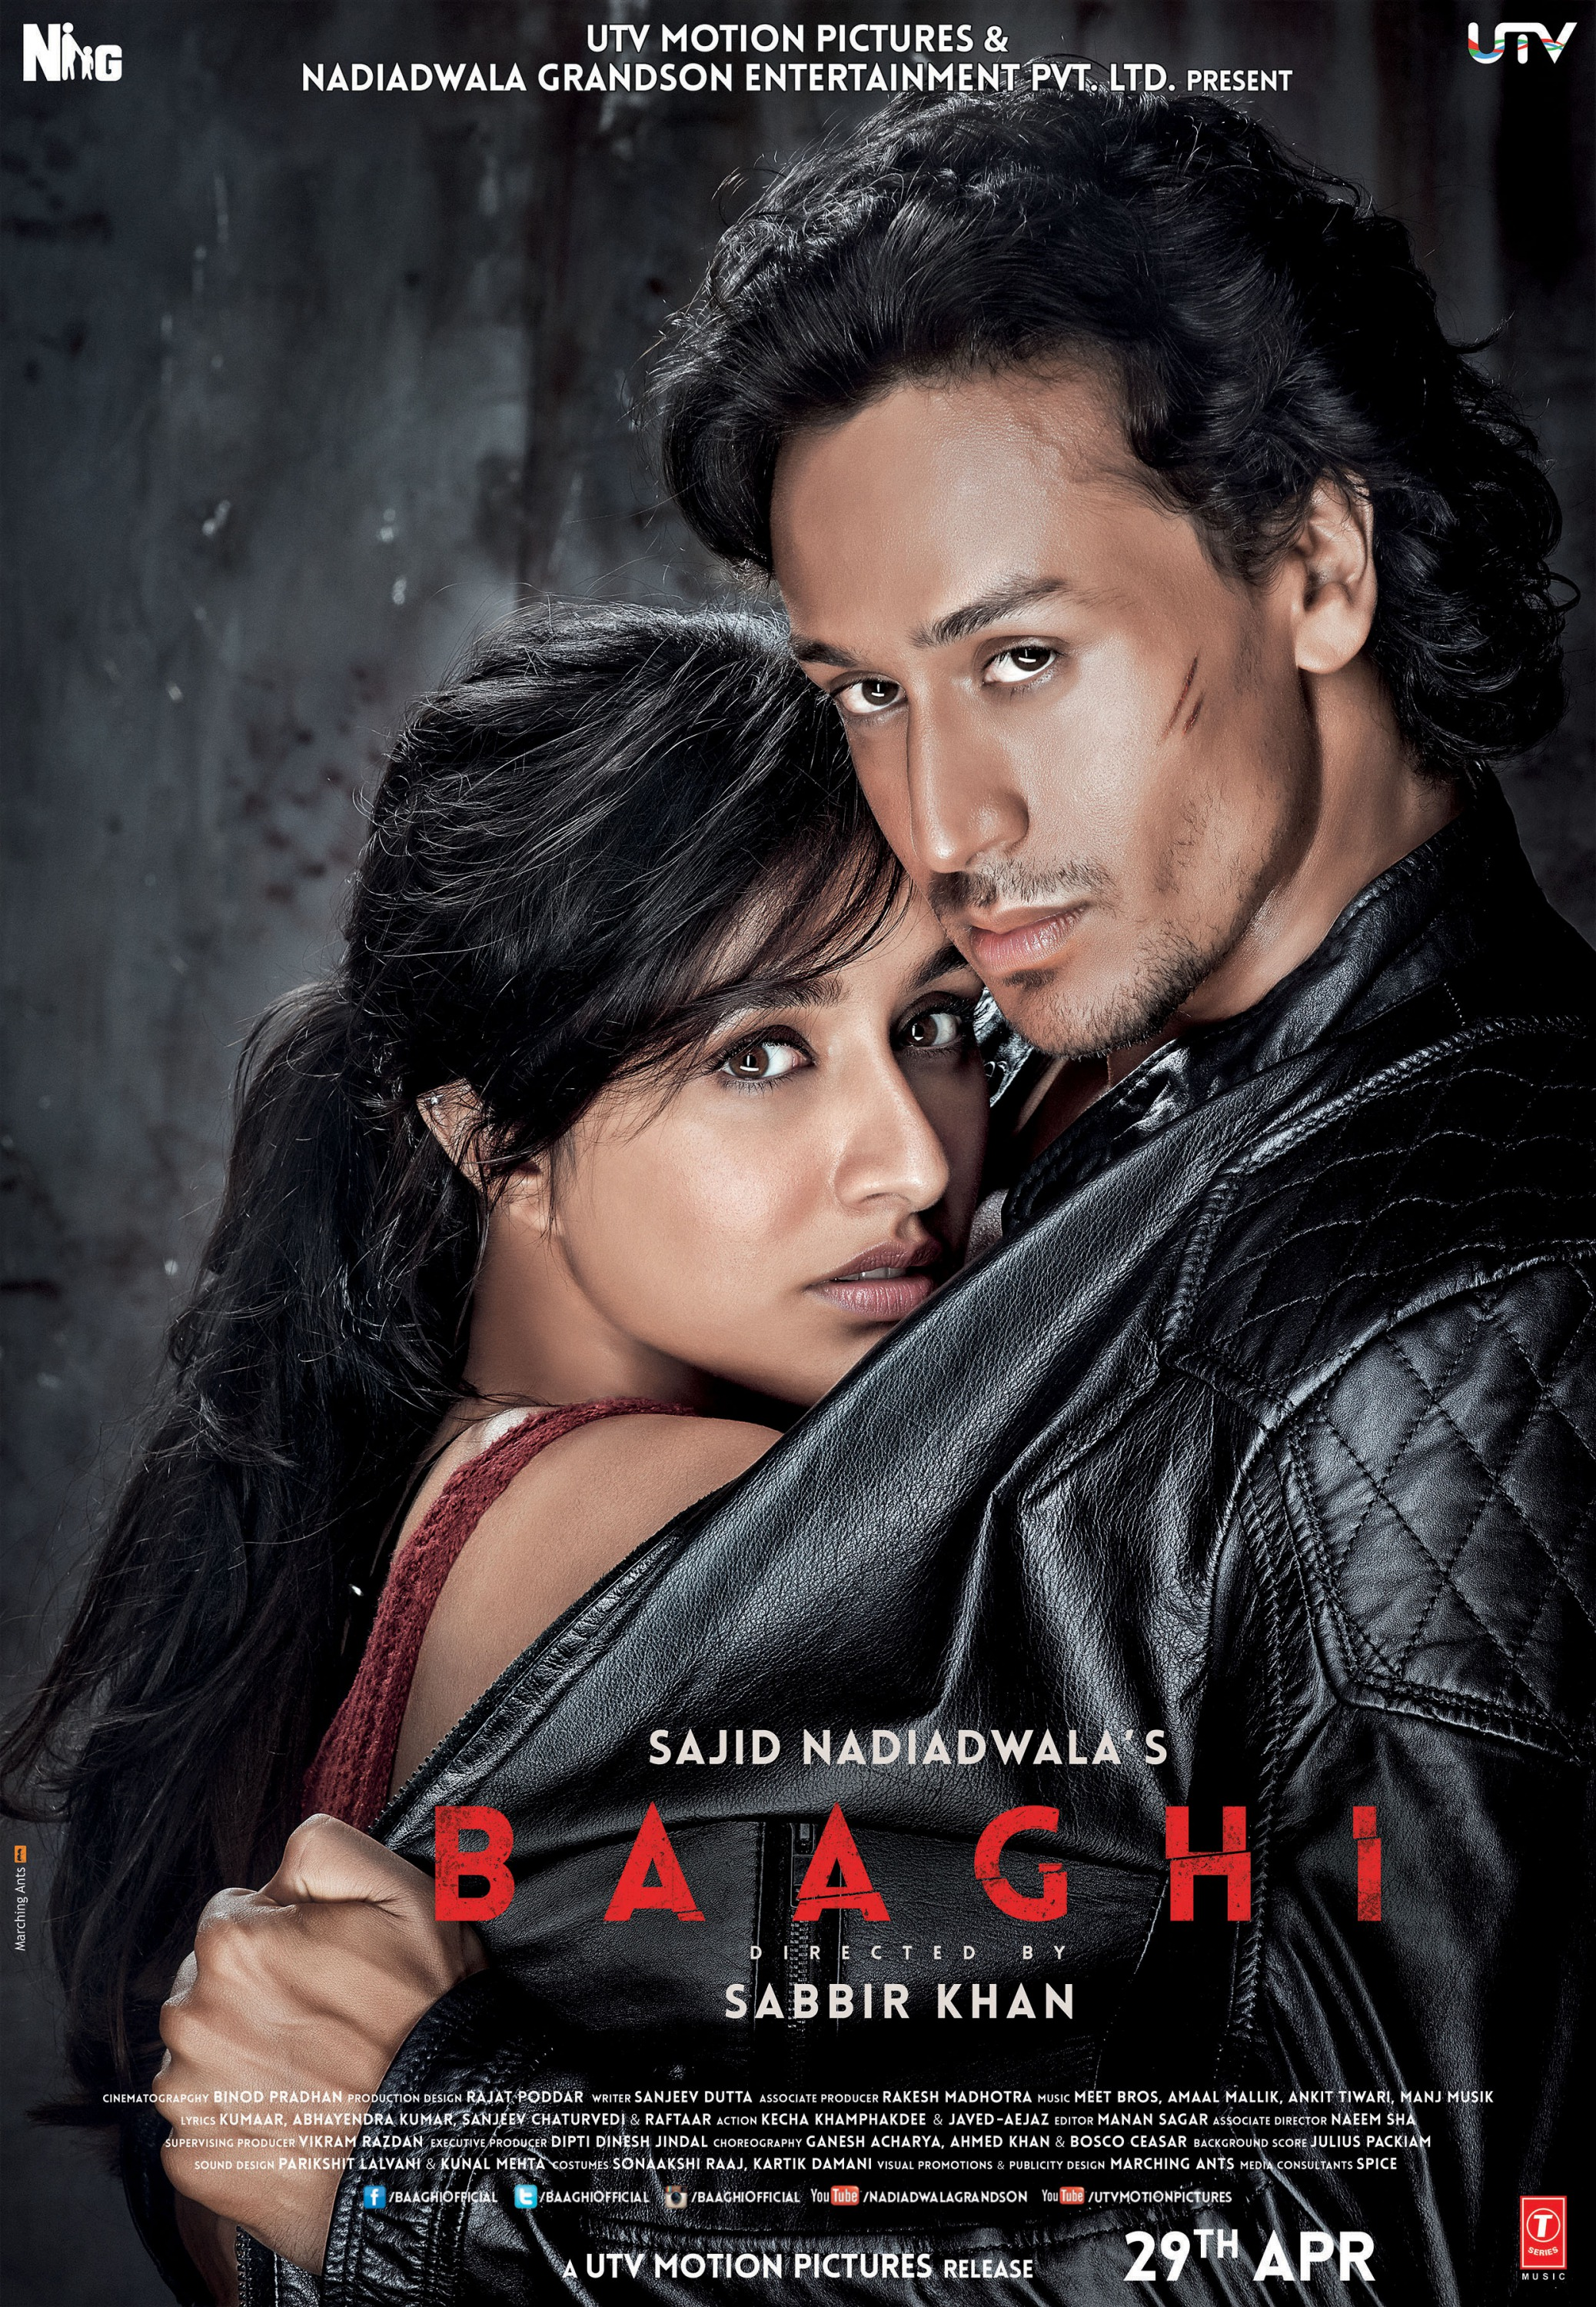 baaghi 2 ringtone free download